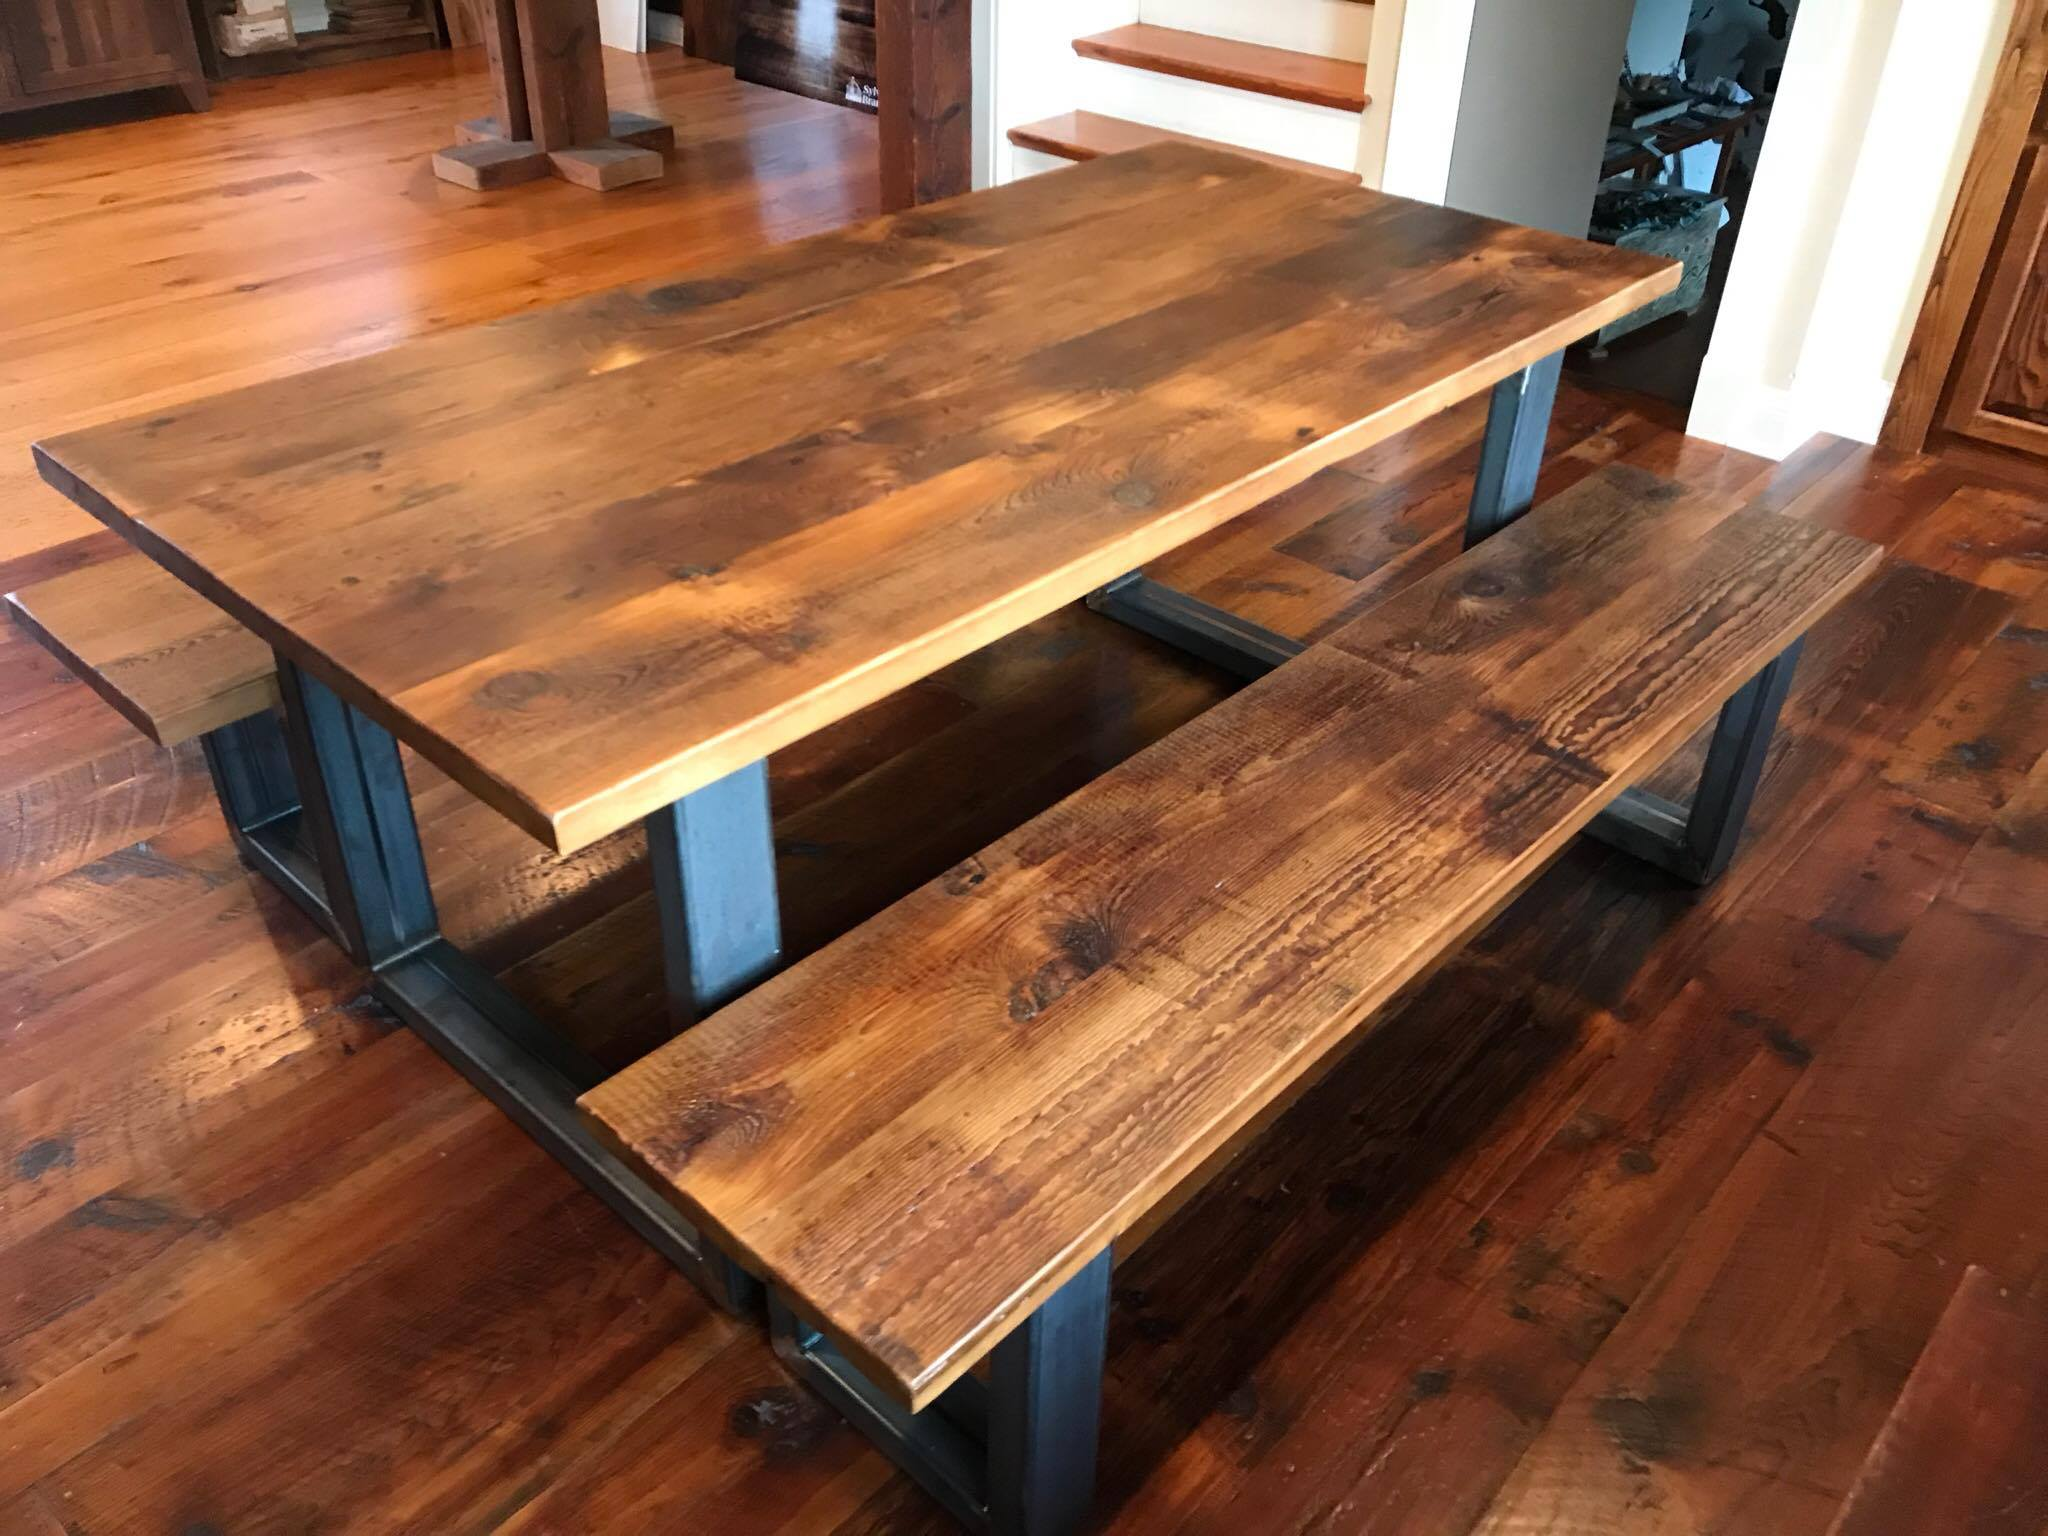 Incredible Reclaimed Wood Plank Tables And Countertops Sylvan Brandt Gmtry Best Dining Table And Chair Ideas Images Gmtryco